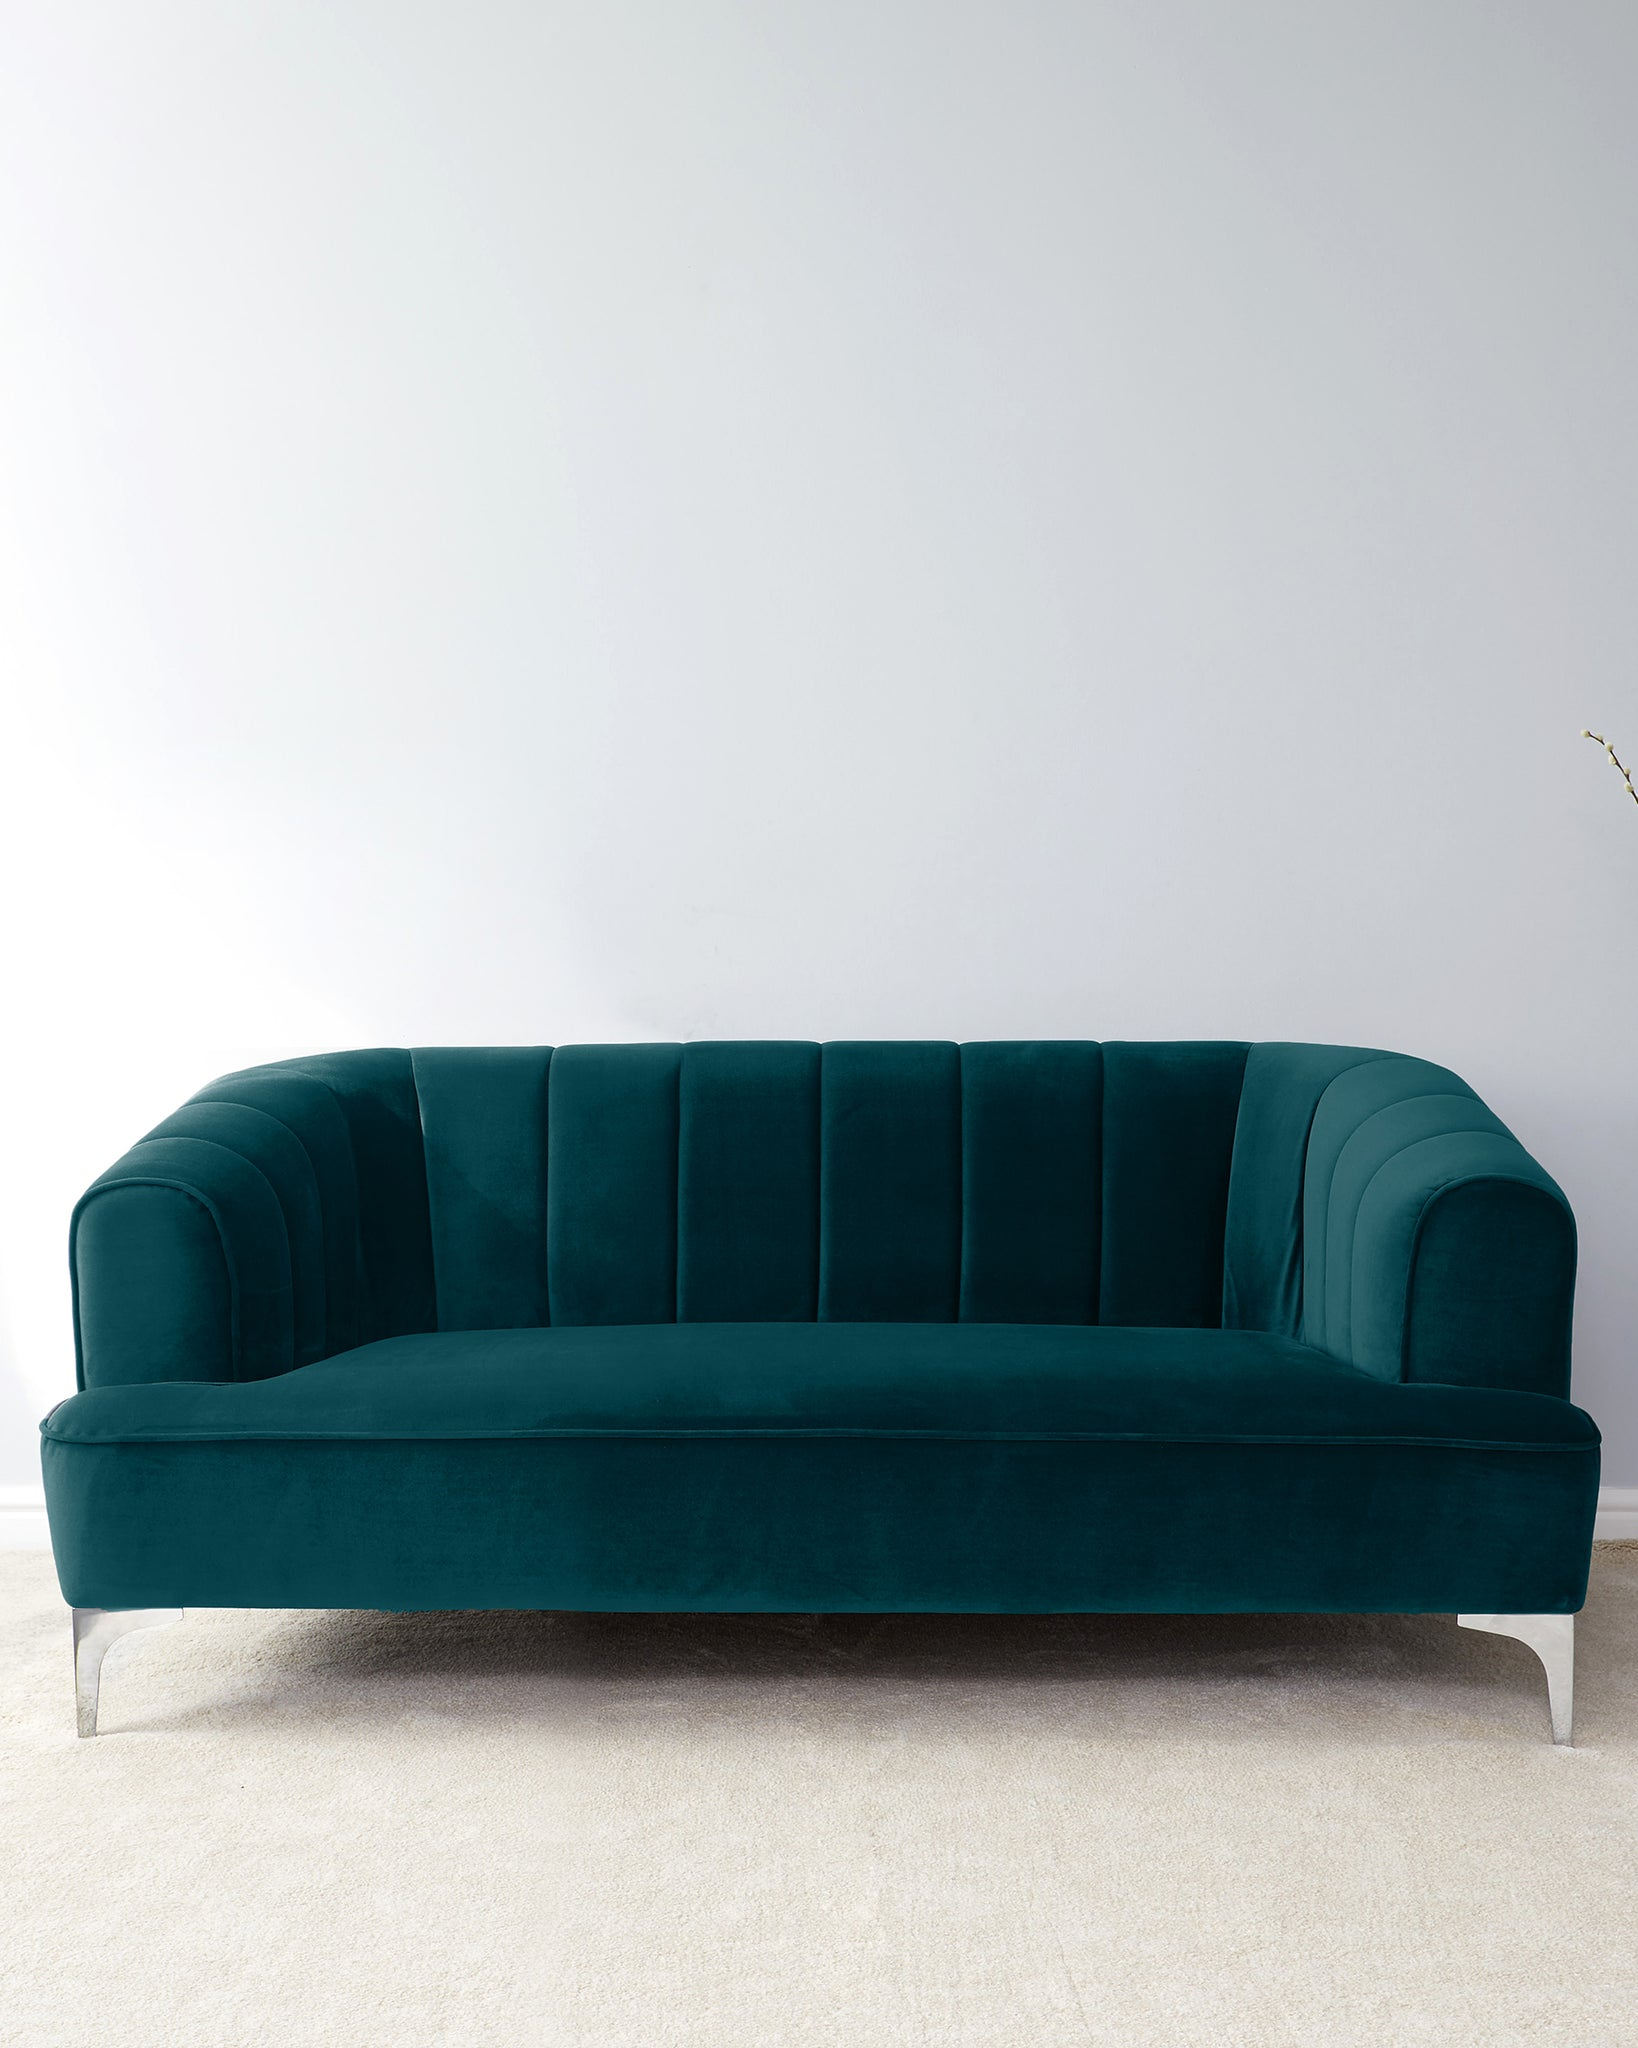 Archie Dark Teal Velvet And Chrome Leg 2 Seater Sofa